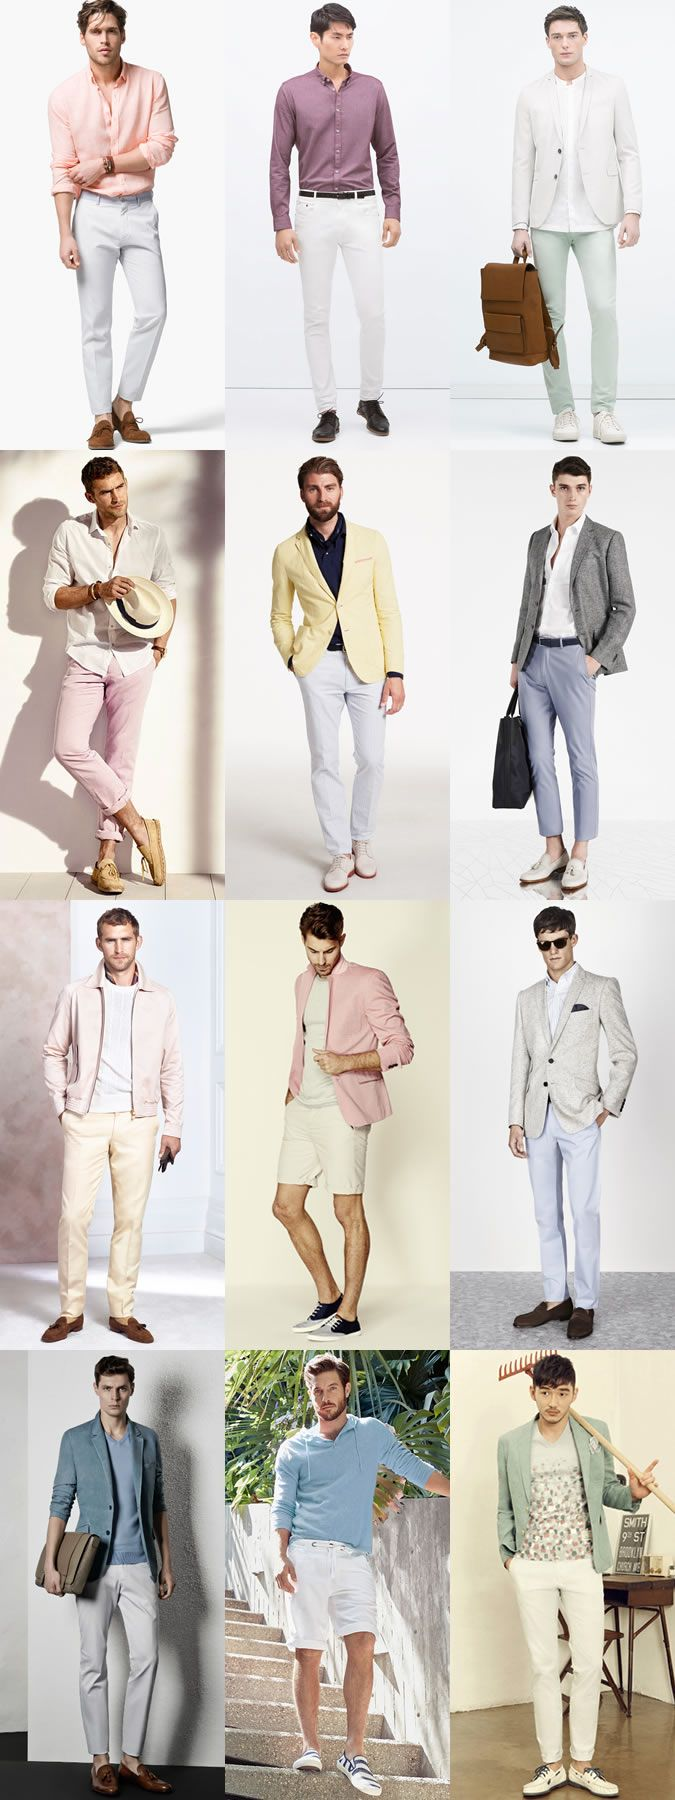 Key Menswear Colour Palettes: White and Pastel Shades Outfit Inspiration Lookbook